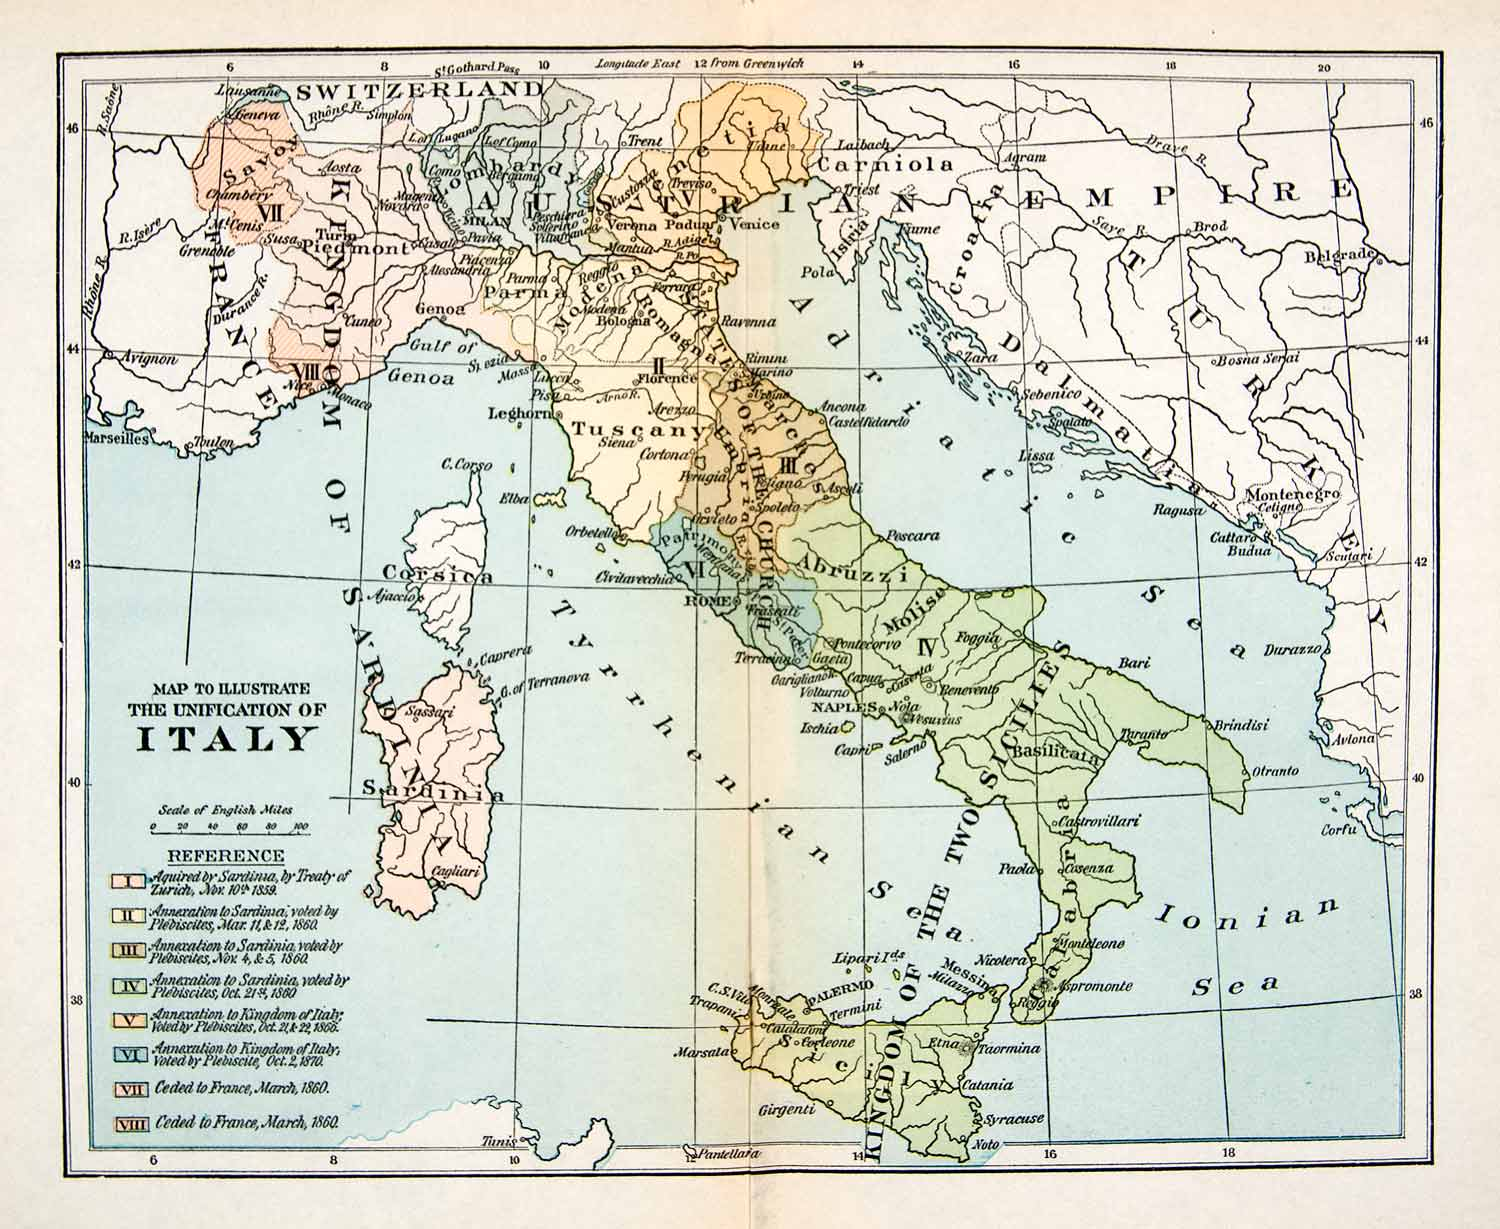 1923 print map italy france sardinia turkey austria ionian sea 1923 print map italy france sardinia turkey austria ionian sea adriatic xeq7 gumiabroncs Image collections